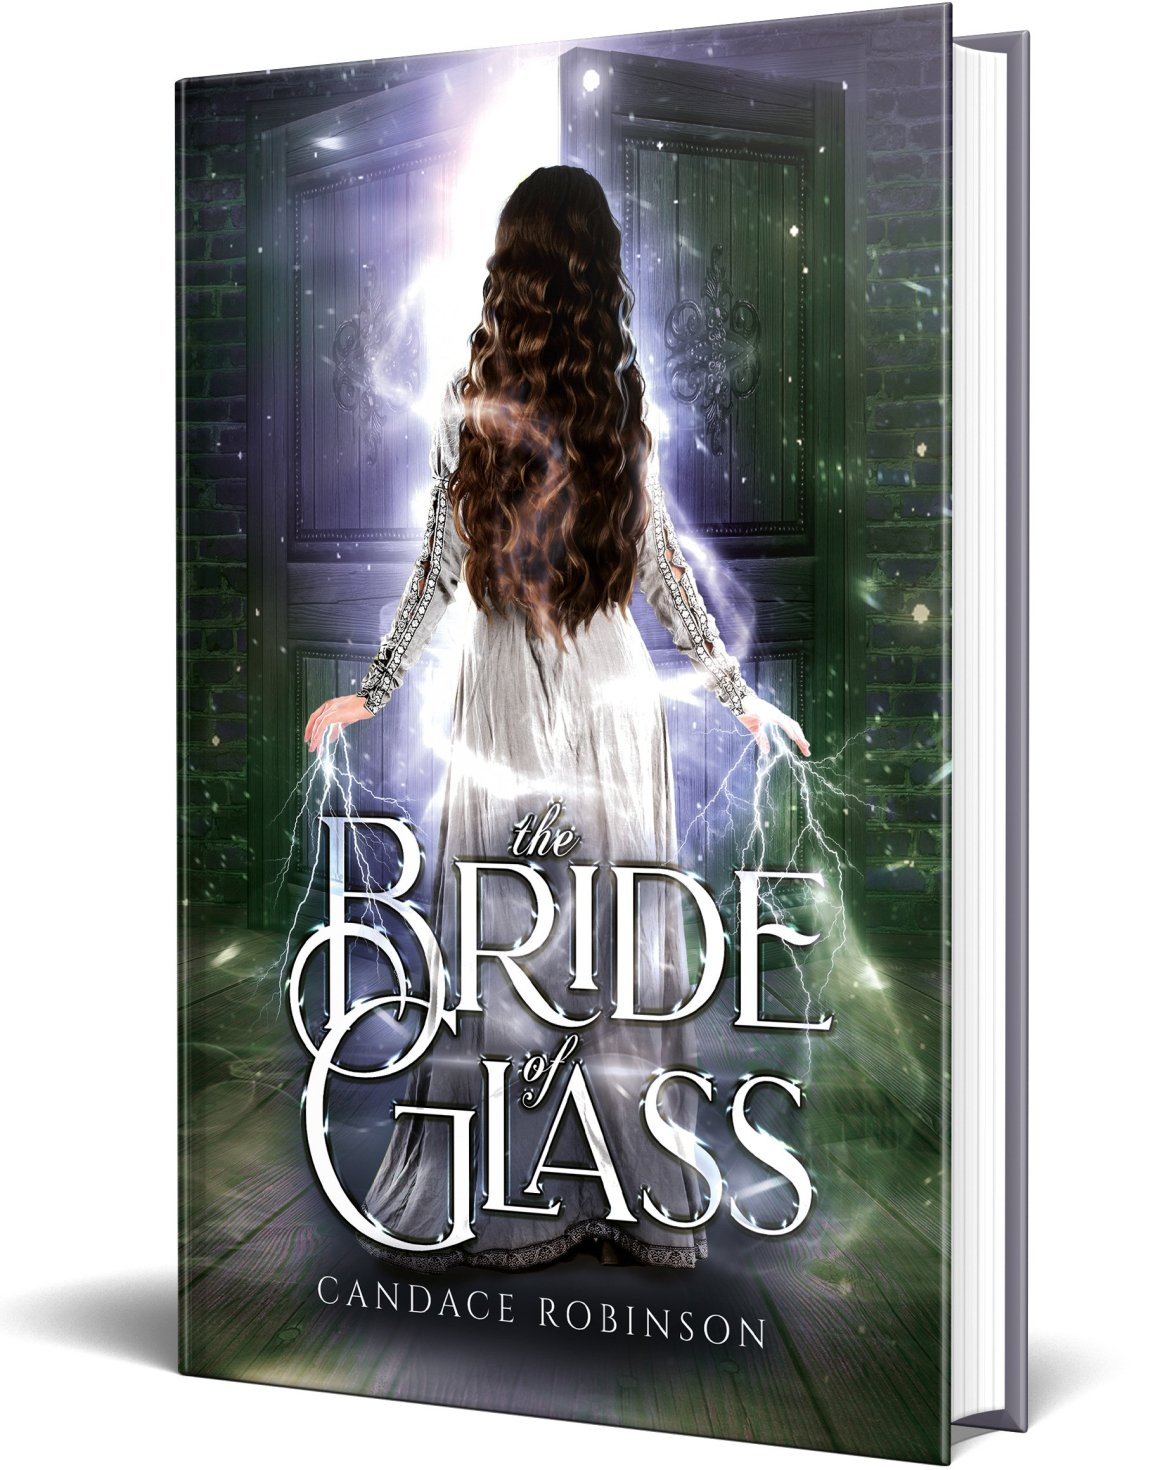 The Bride of Glass by Candace Robinson